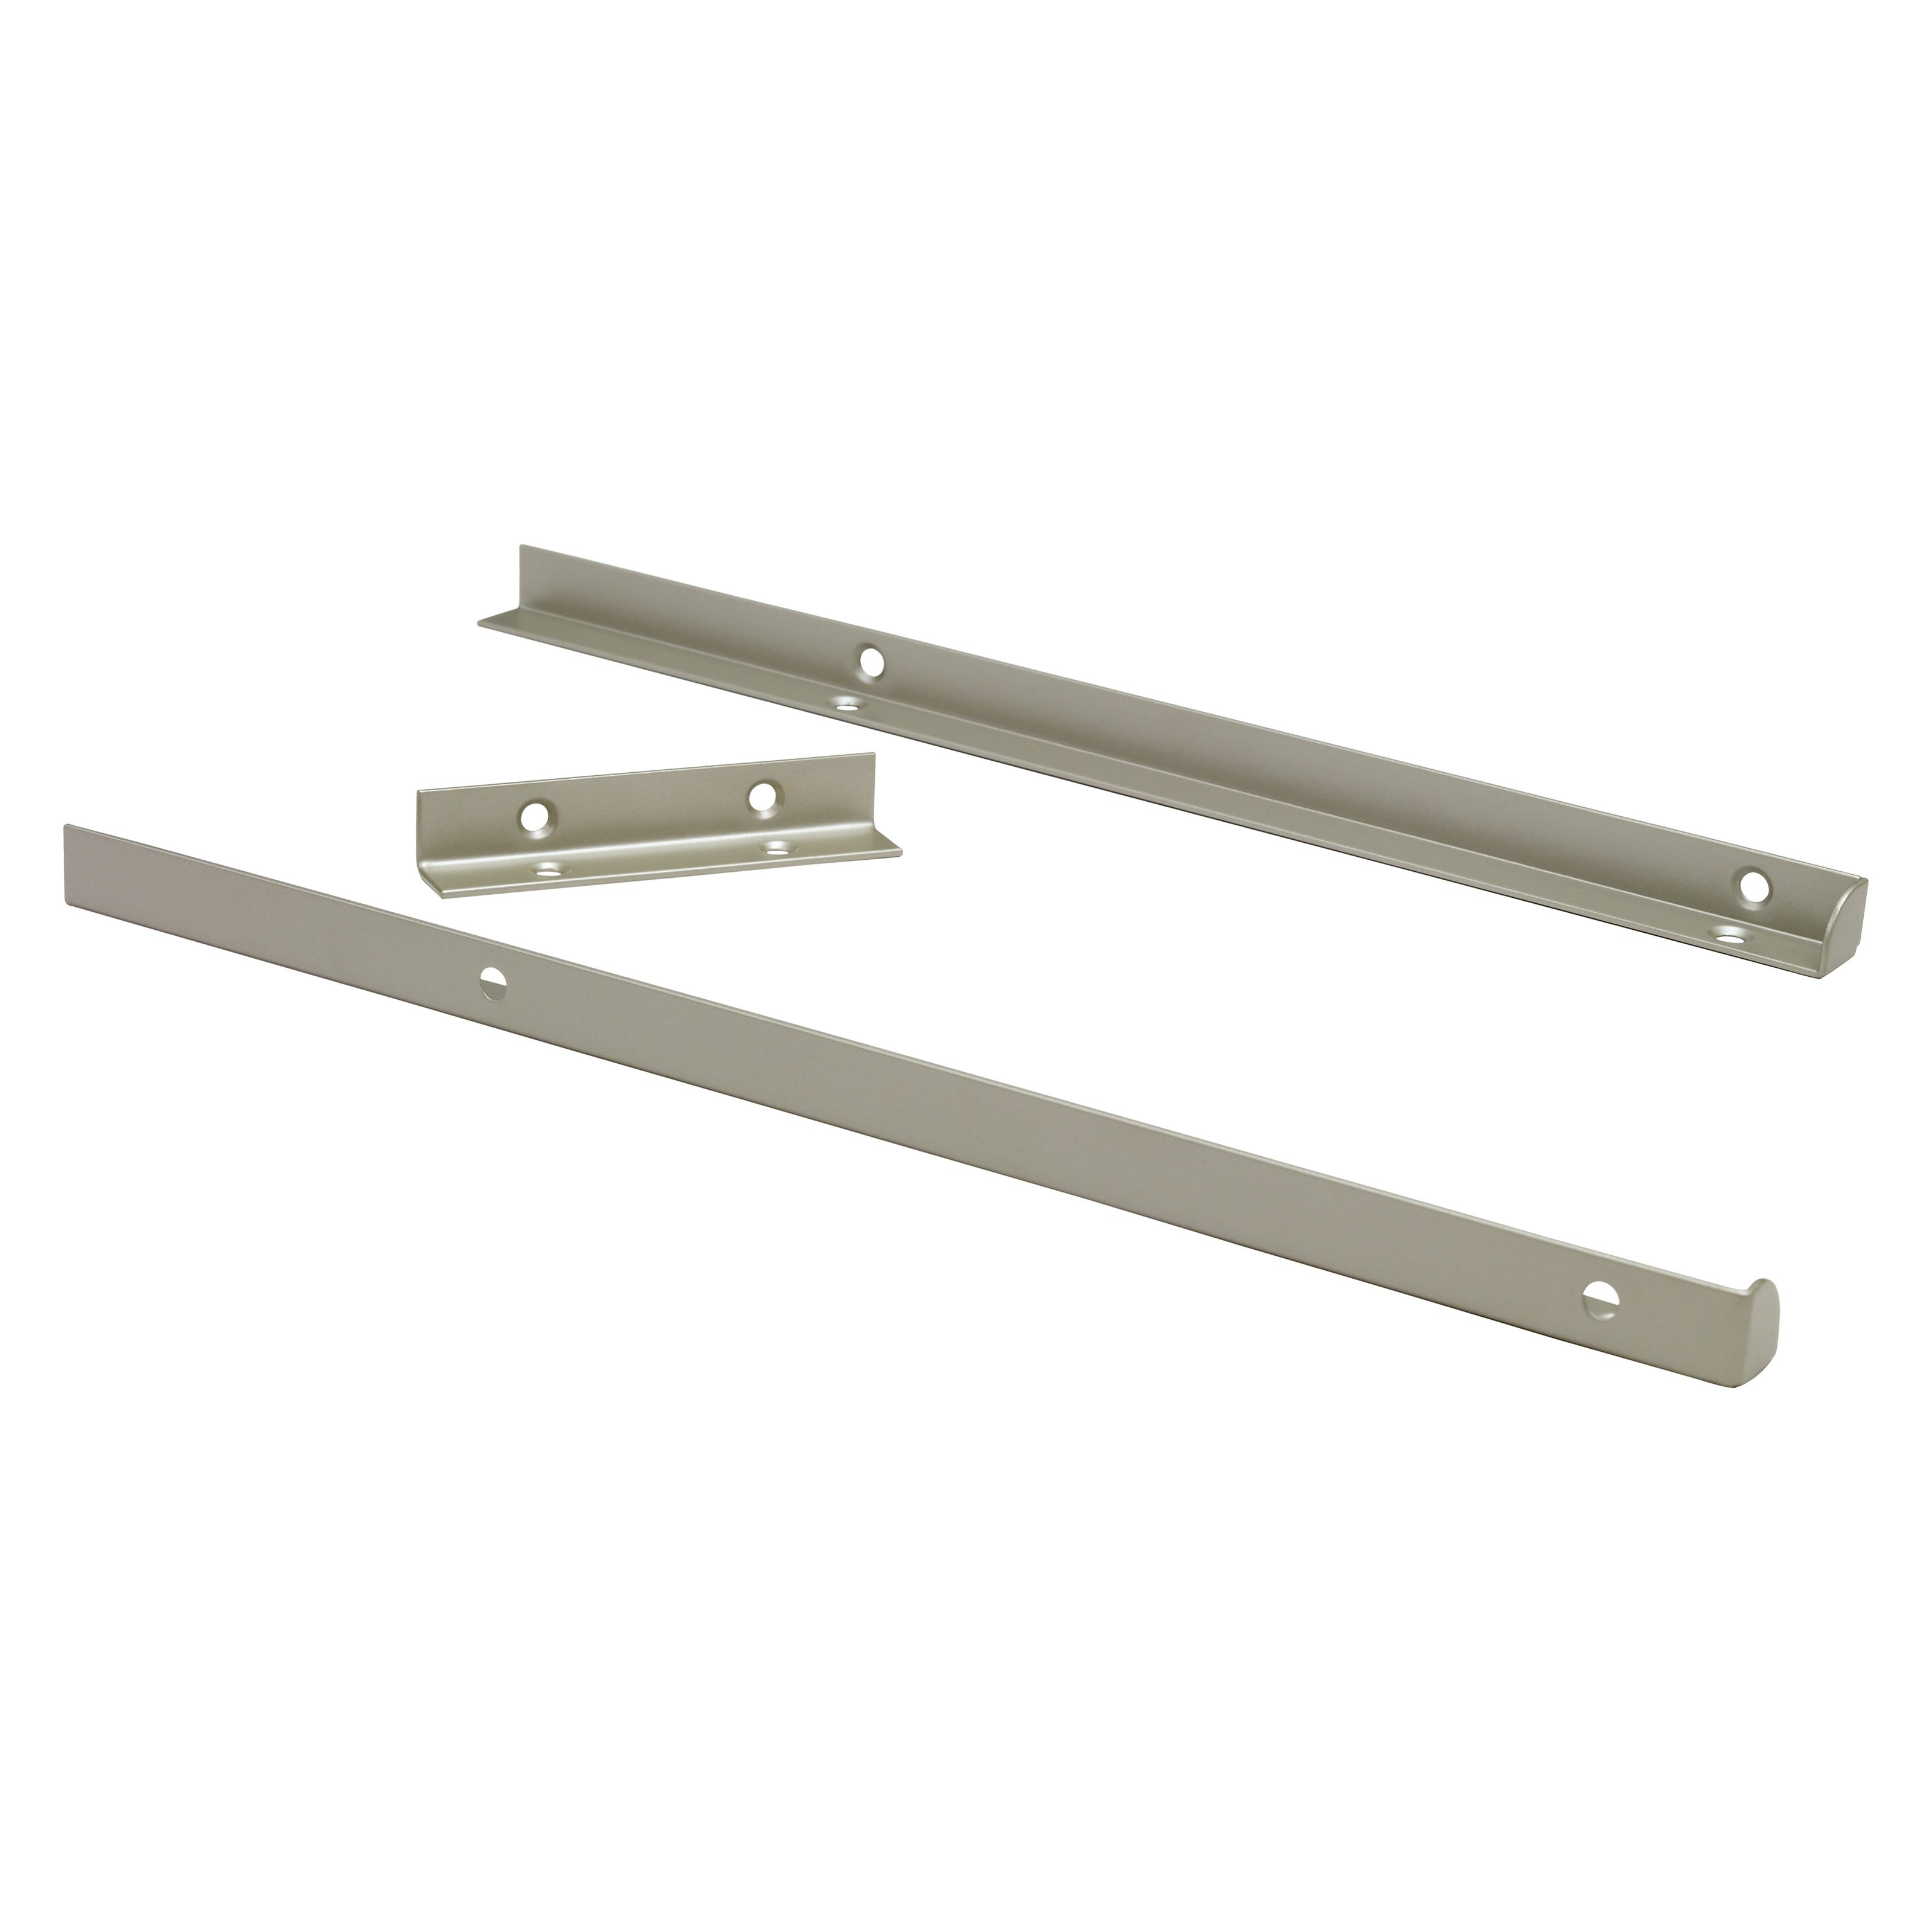 ClosetMaid SuiteSymphony Shelf Support Kit   Walmart.com